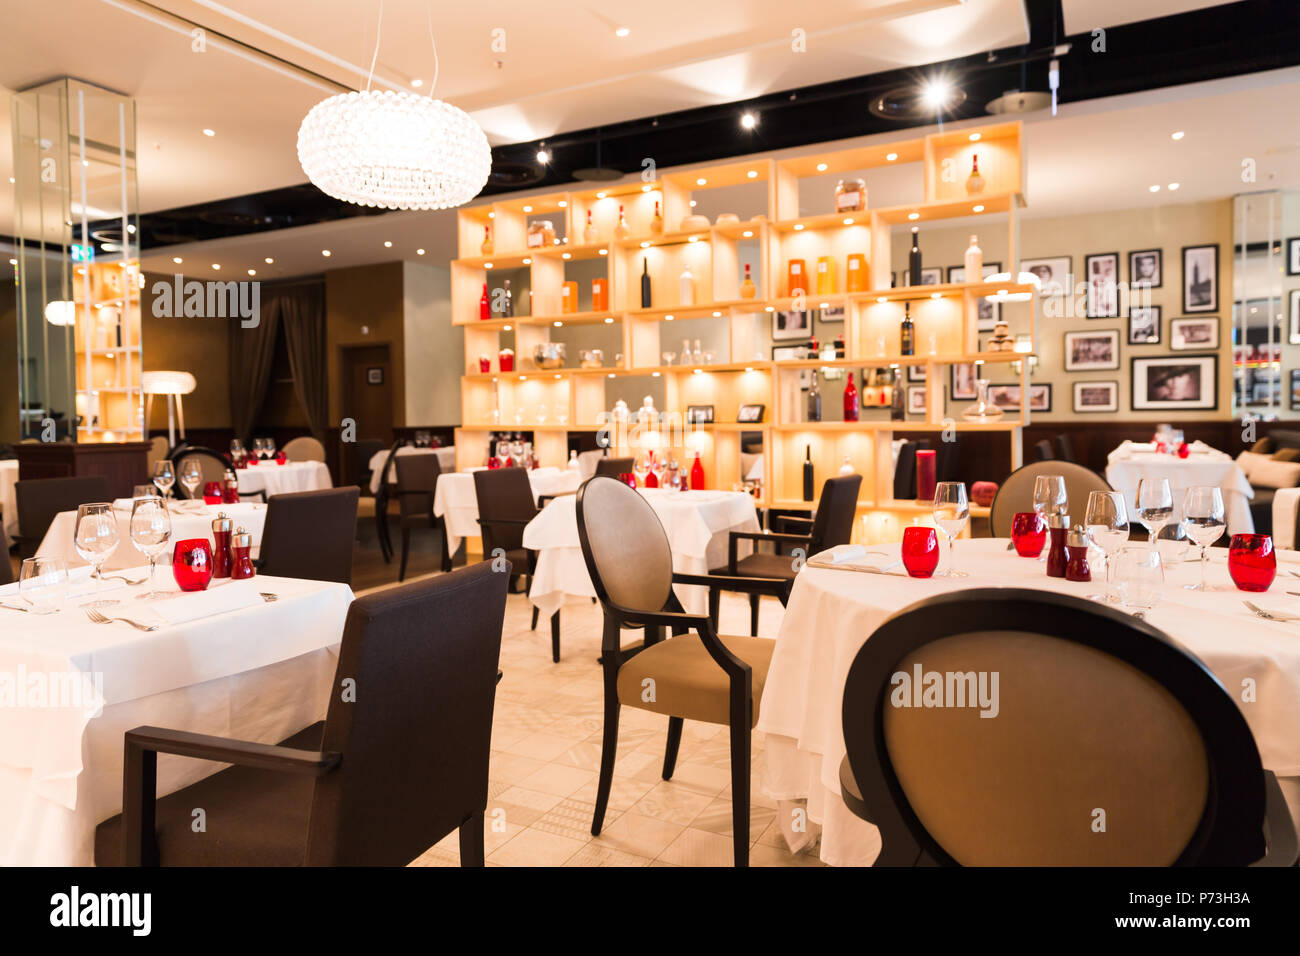 Interior Decoration Restaurant Stockfotos & Interior Decoration ...